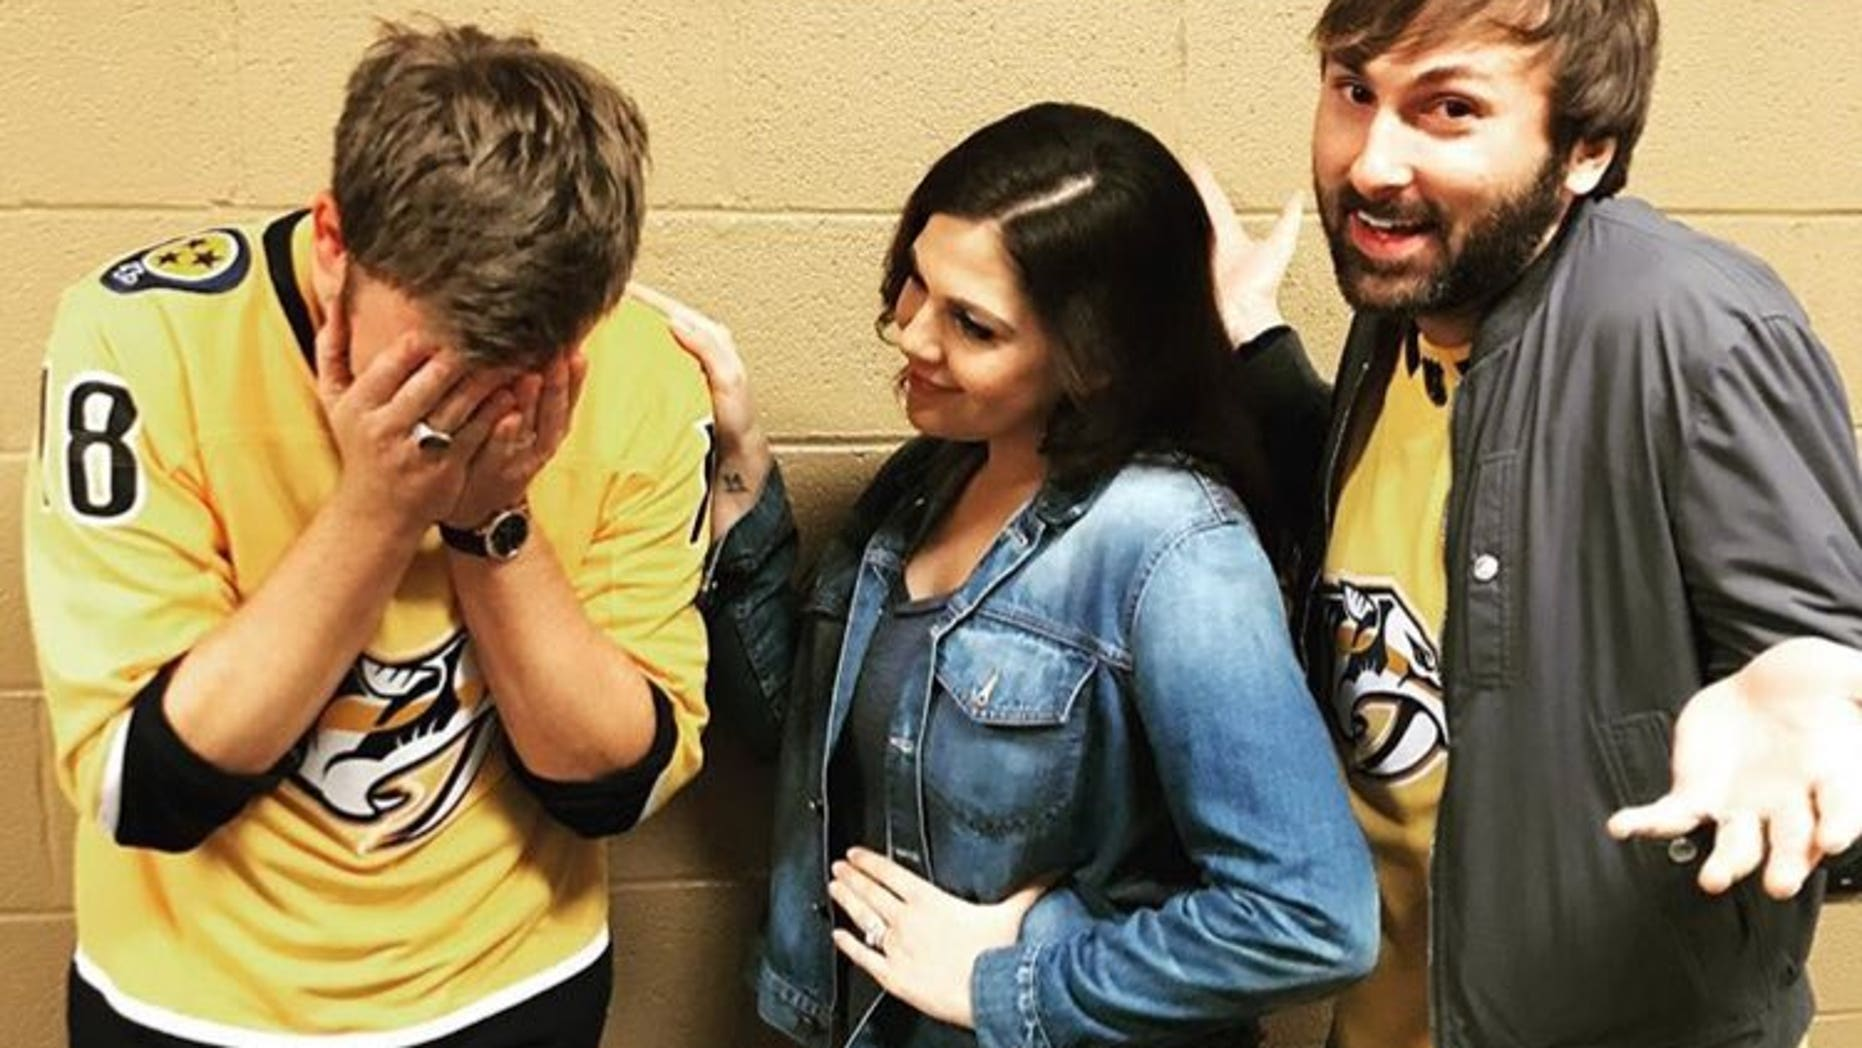 Lady Antebellum ran into some trouble as they forgot the lyrics during the performance of the National Anthem at the NHL playoff game between the Nashville Predators and Winnipeg Jets in Nashville.